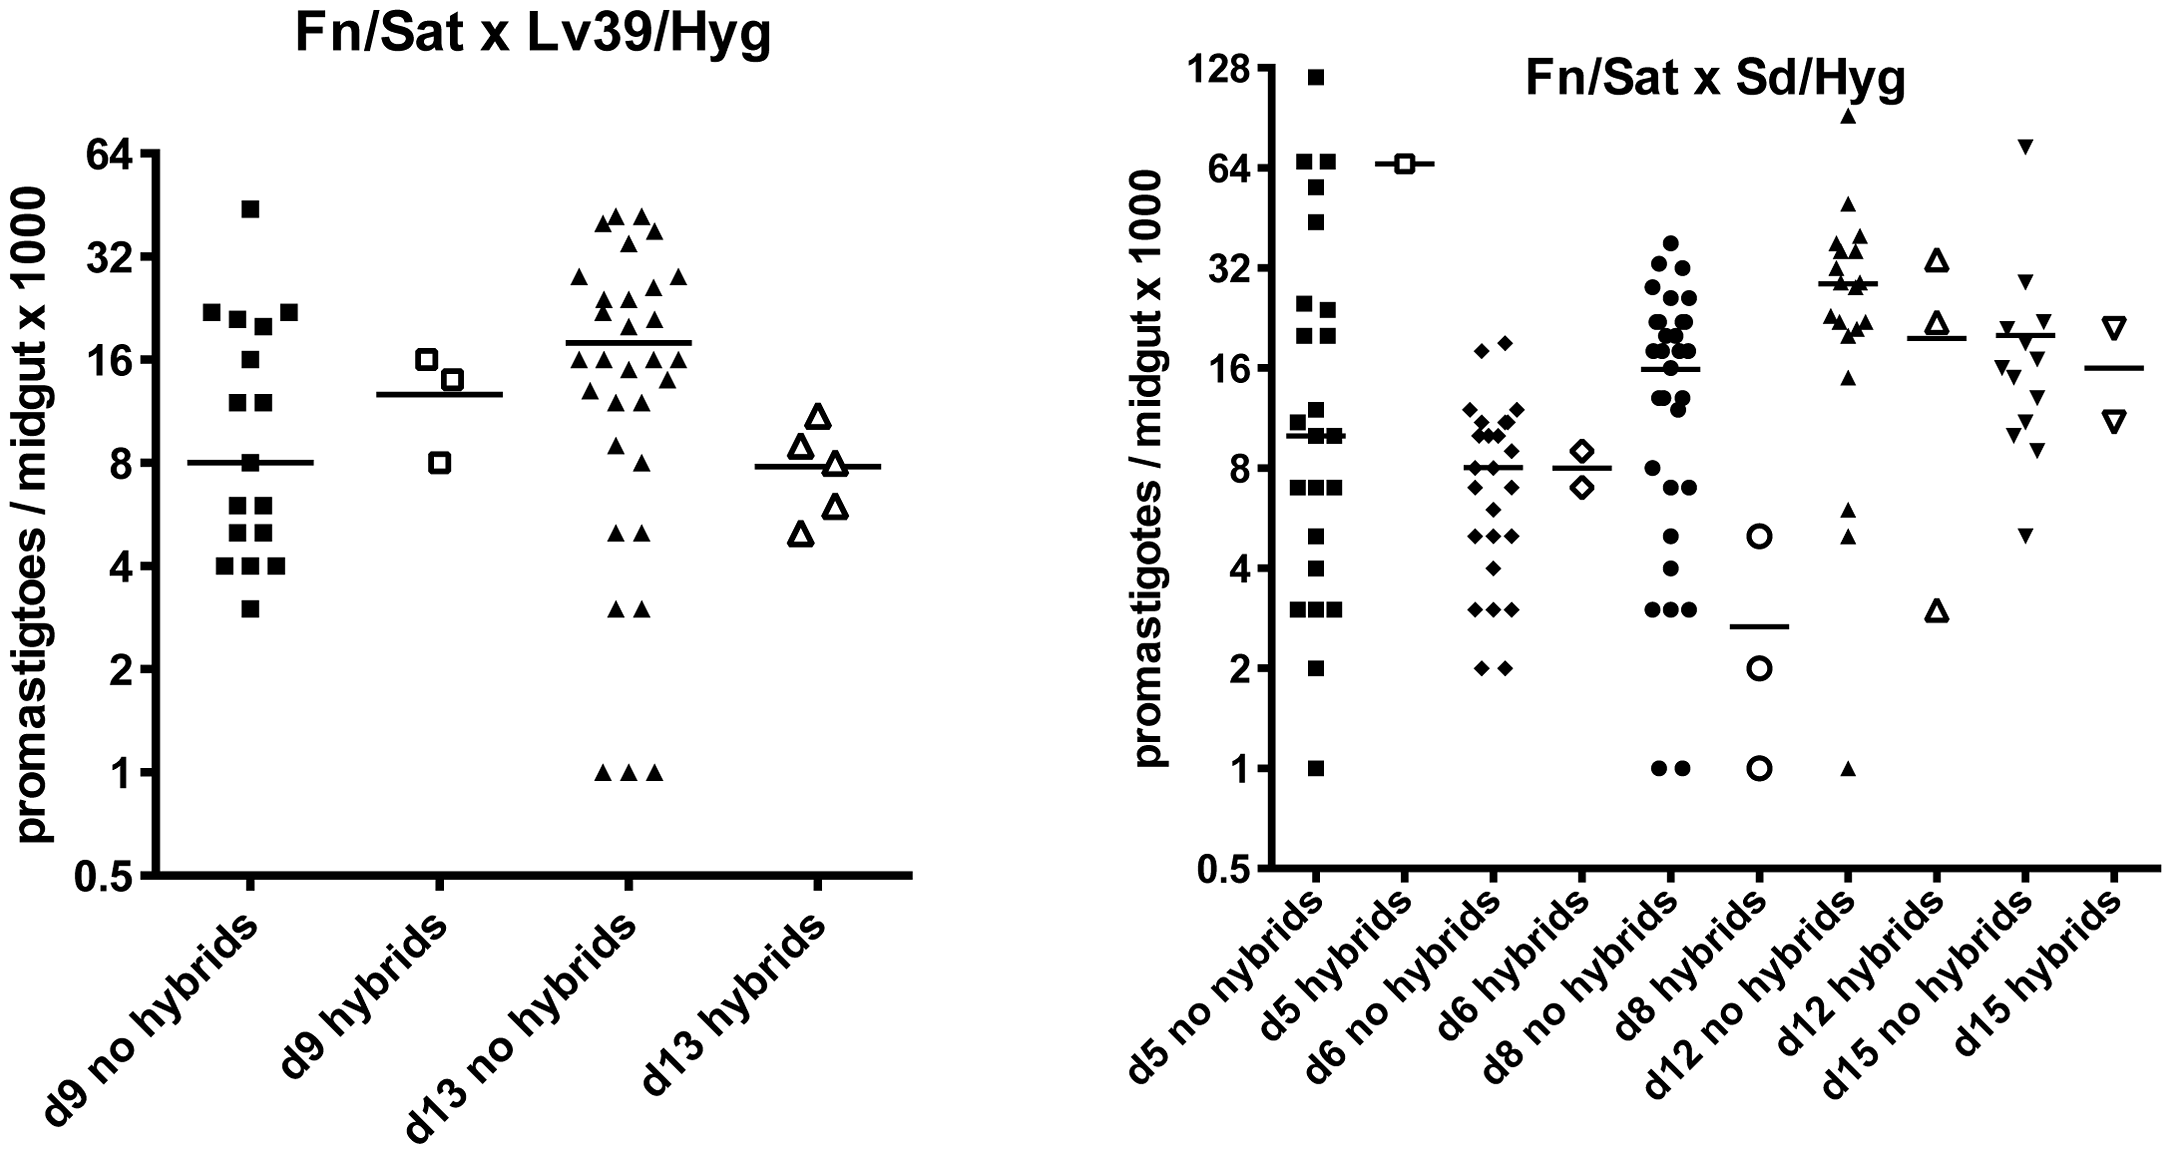 Infection levels at time of dissection in <i>P. duboscqi</i> midguts with and without hybrids.